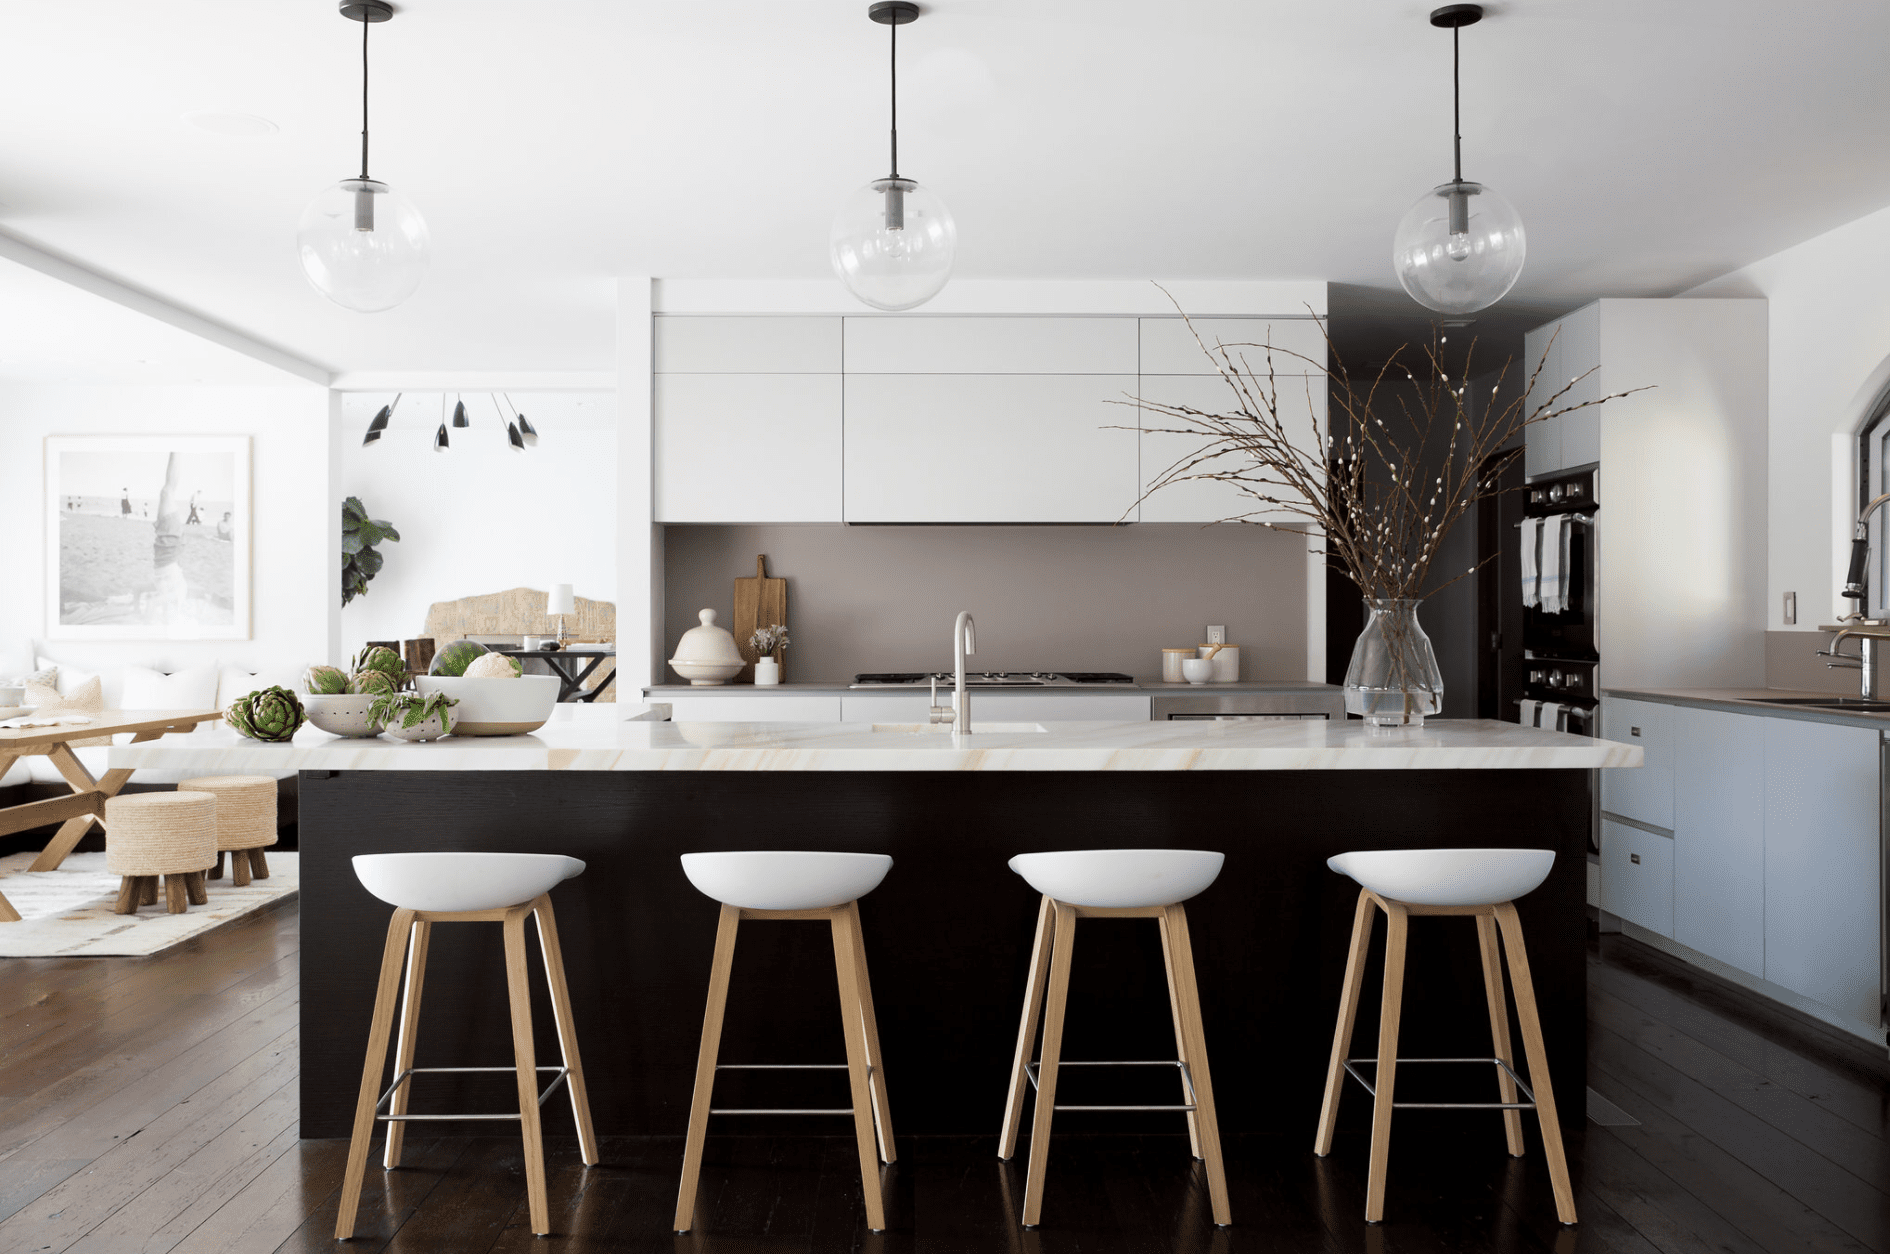 A black and white kitchen with a bold taupe backsplash